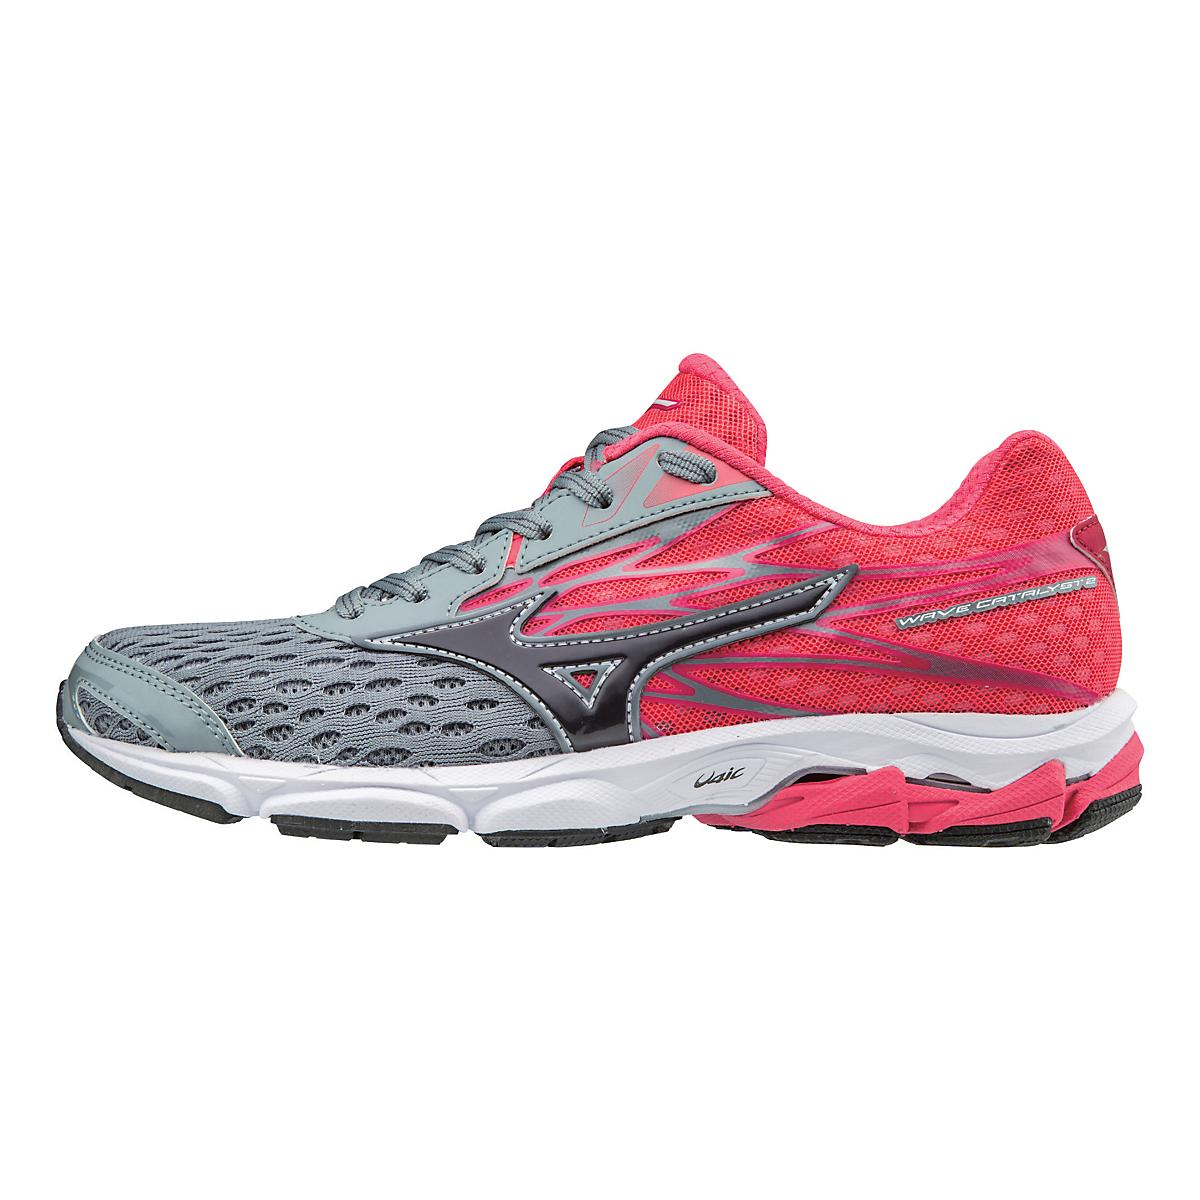 61f8b47156d0 Womens Mizuno Wave Catalyst 2 Running Shoe at Road Runner Sports